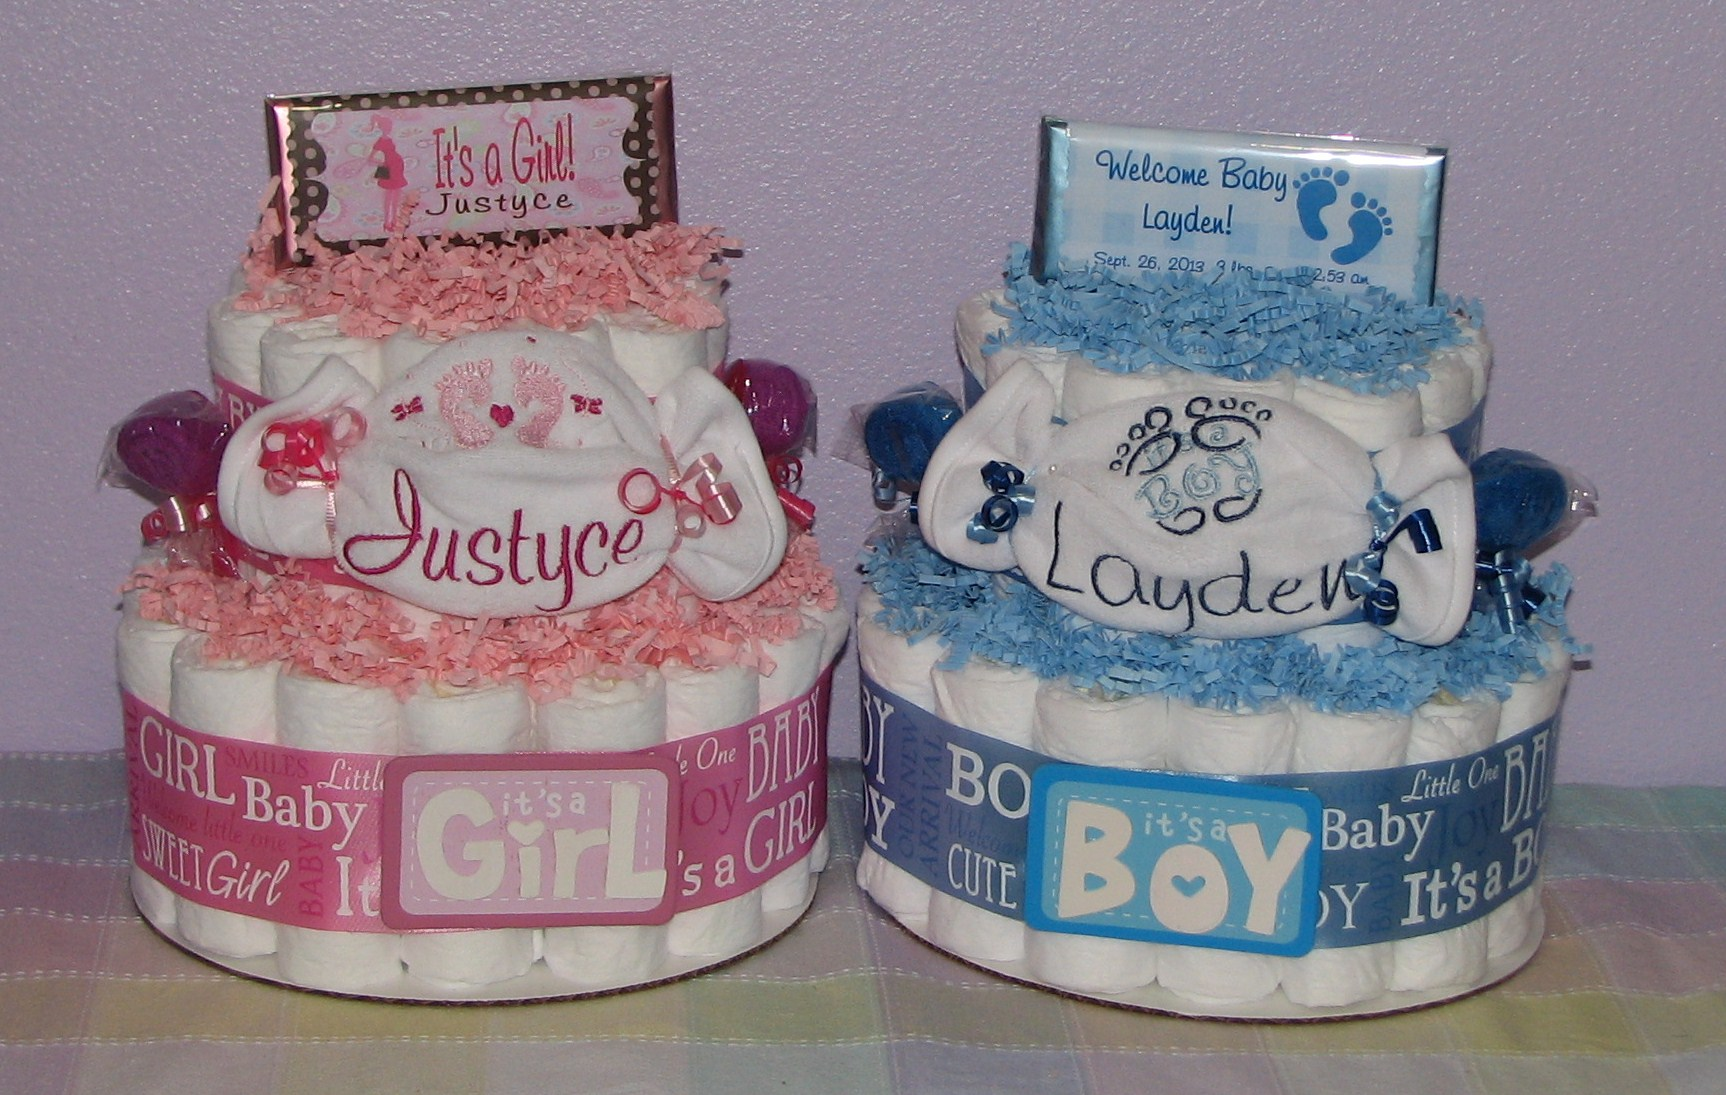 baby-boy-and-girl-diaper-cakes.JPG - Embroidered Diaper Cakes